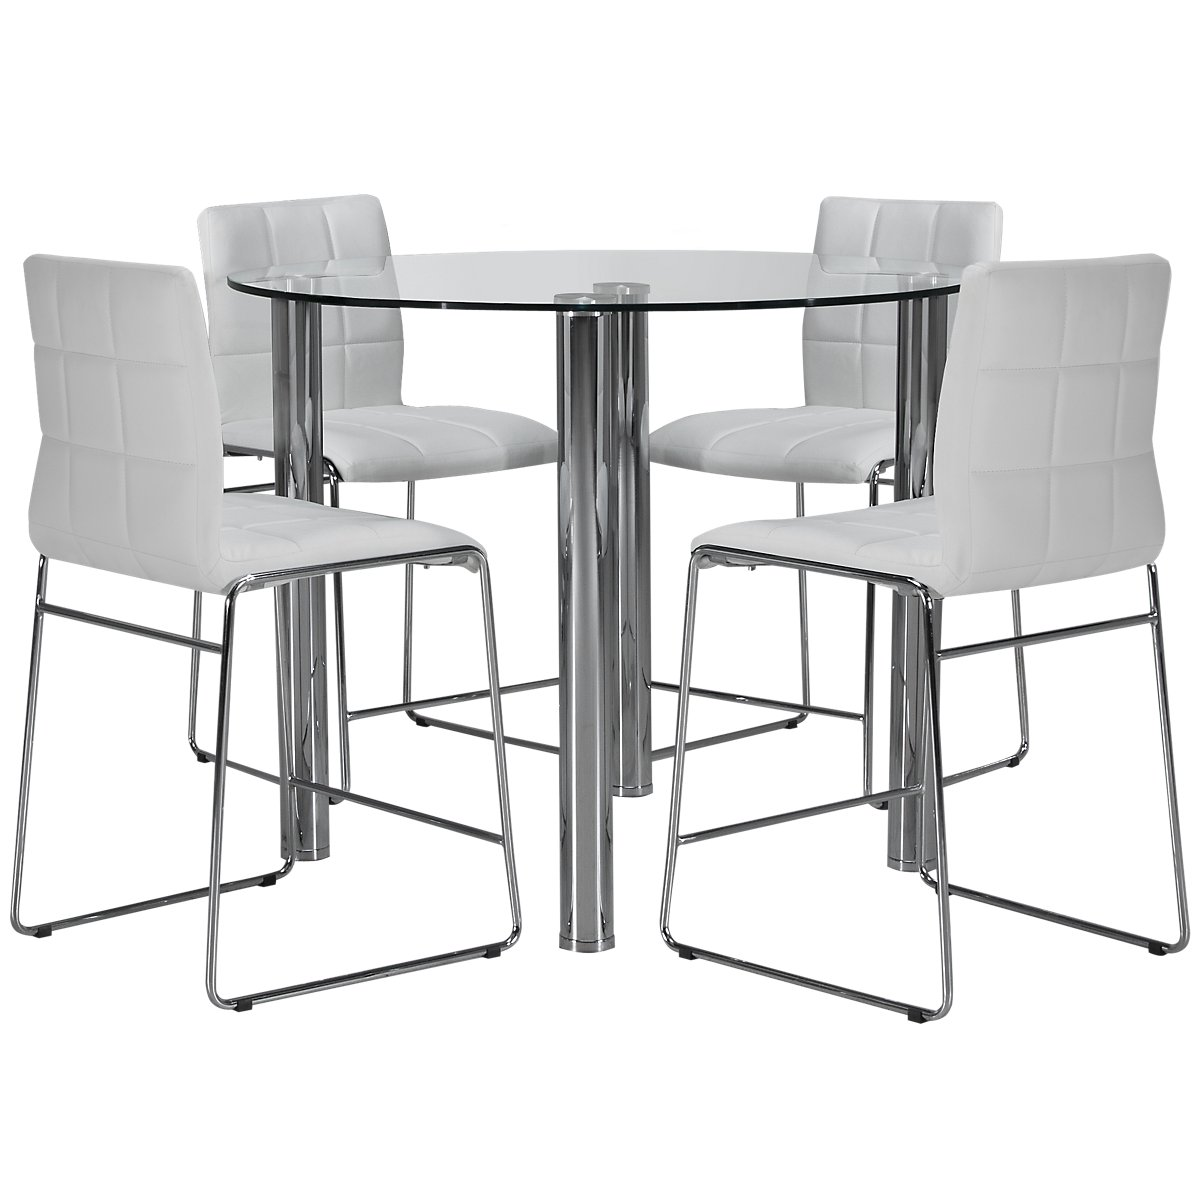 Napoli White Glass High Table & 4 Upholstered Barstools